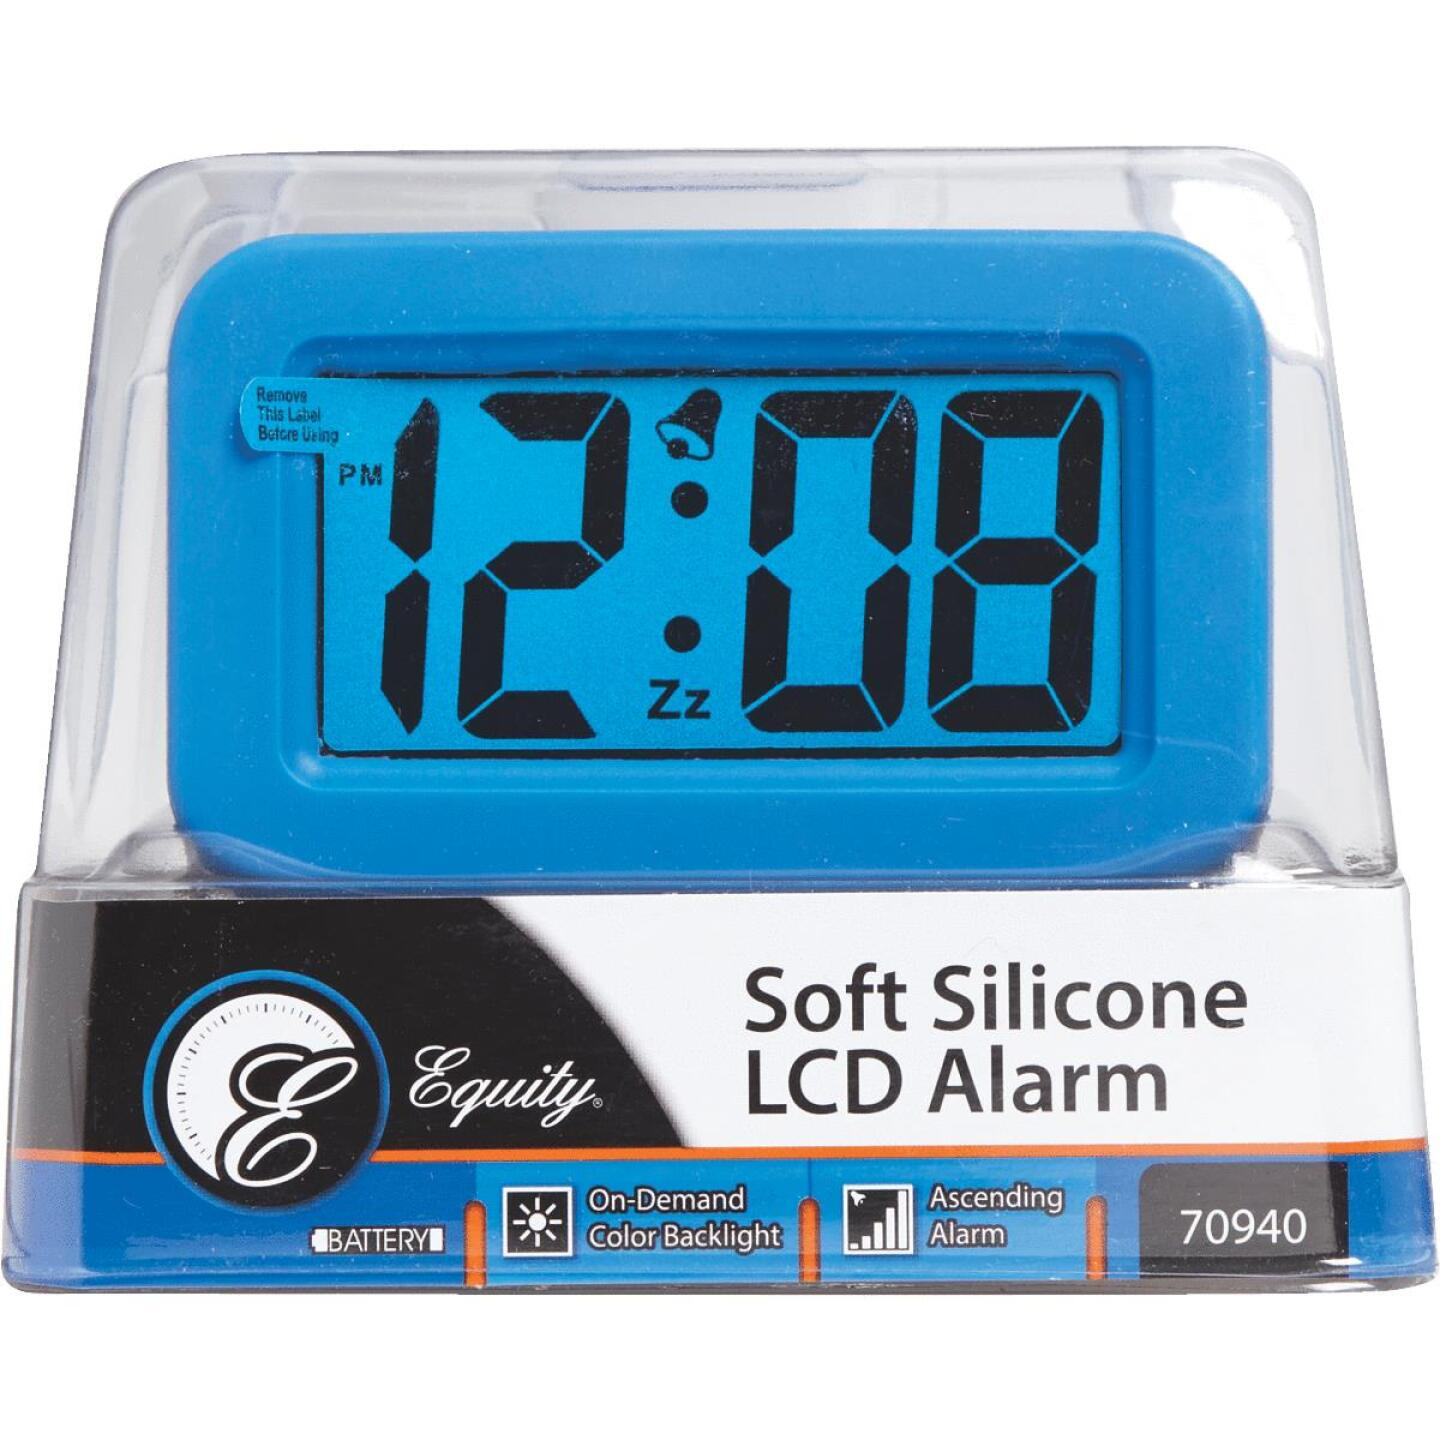 La Crosse Technology Silicon LCD Battery Operated Alarm Clock Image 2